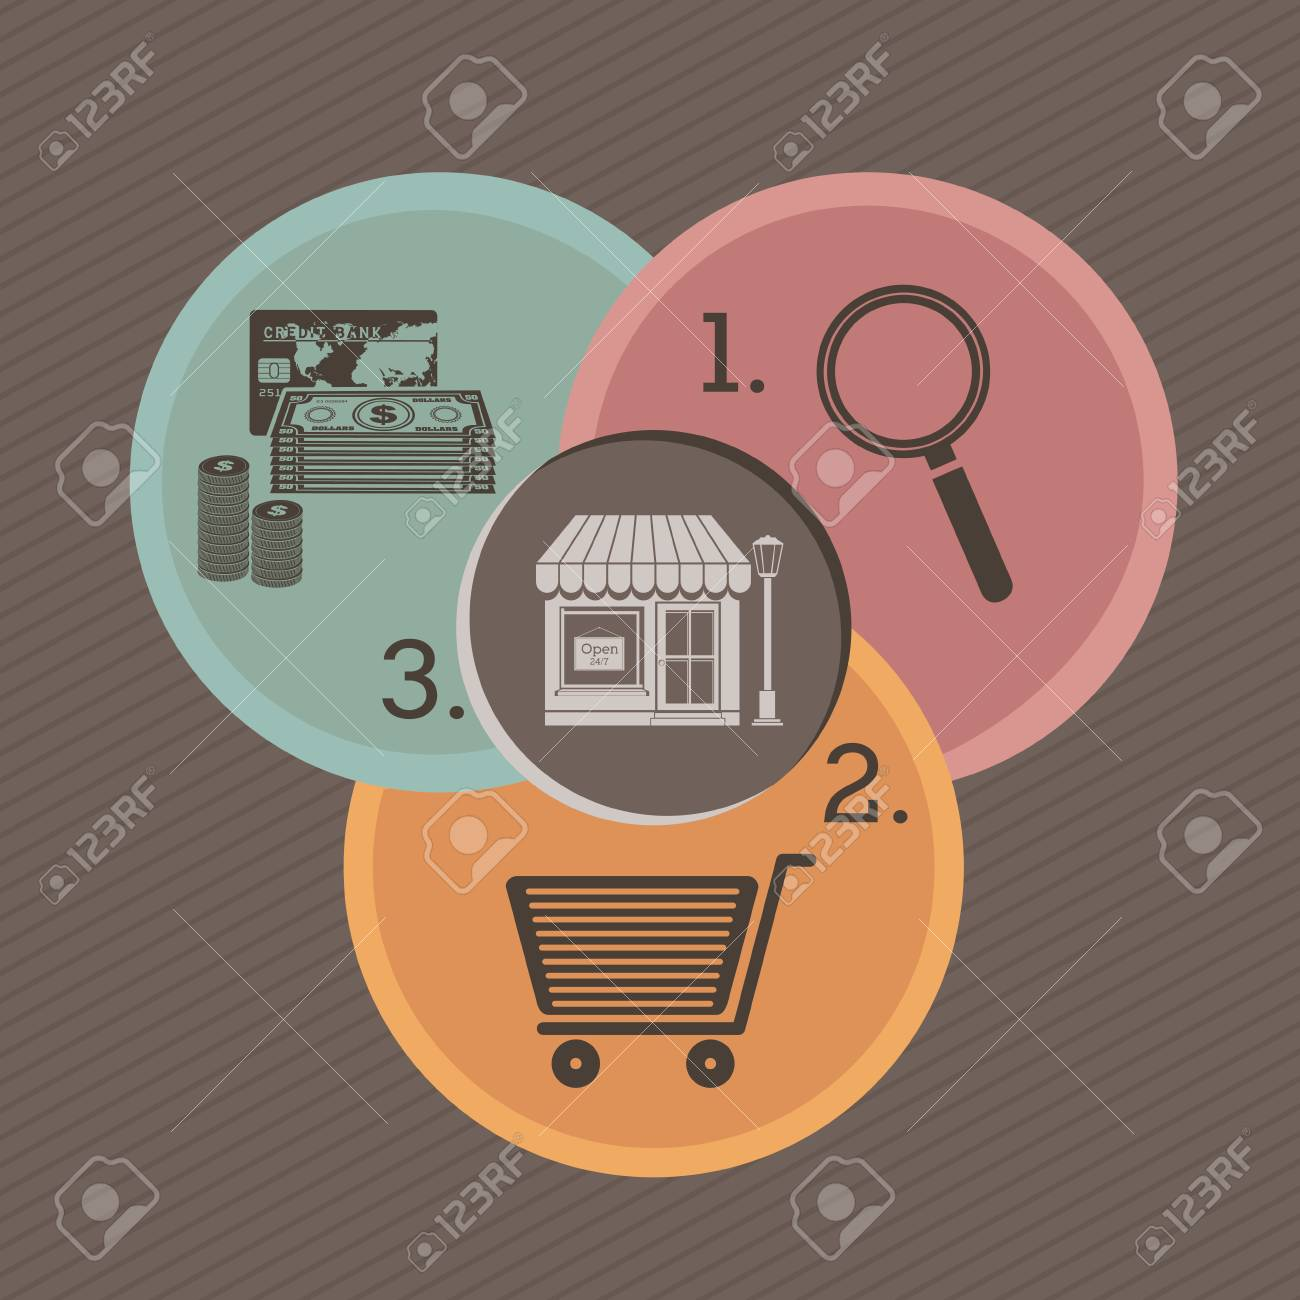 buy icons over gray background vector illustration Stock Vector - 23747096